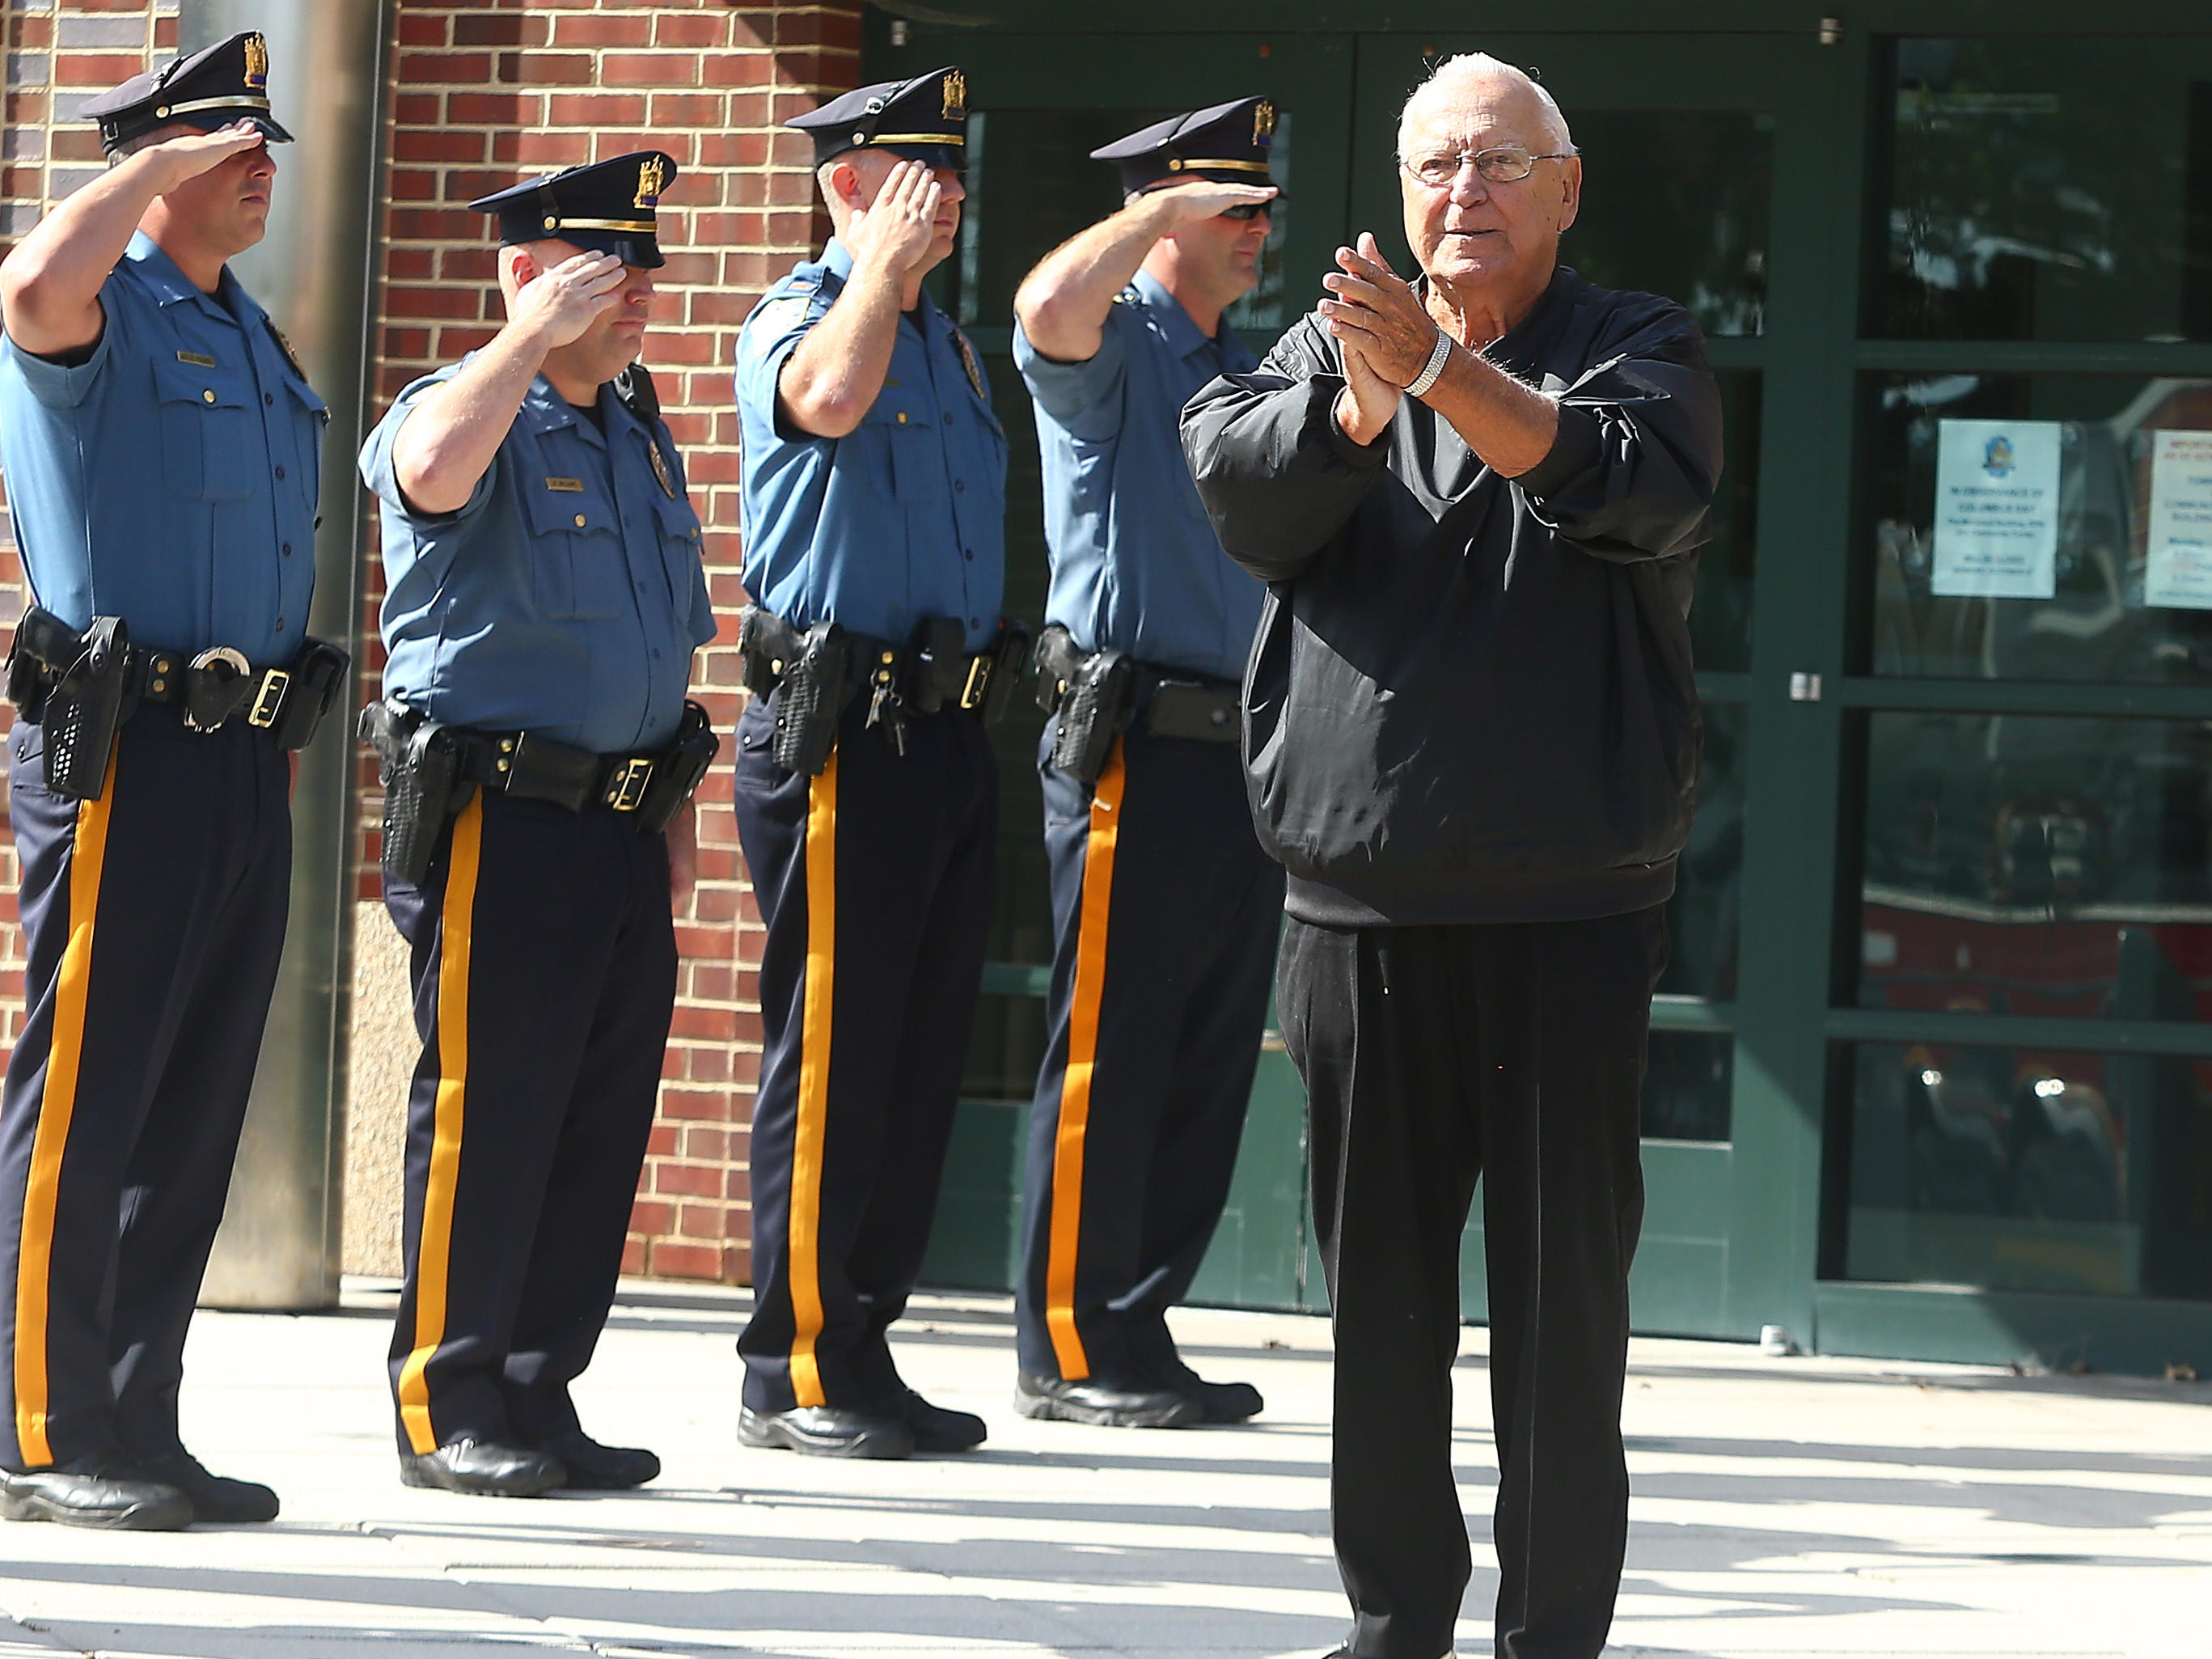 Steve Bolcar comes out of the Hanover Municipal Building to applause during his Police-style clapout for retirement of the 60-year officer and crossing guard. October 3, 2018, Hanover, NJ